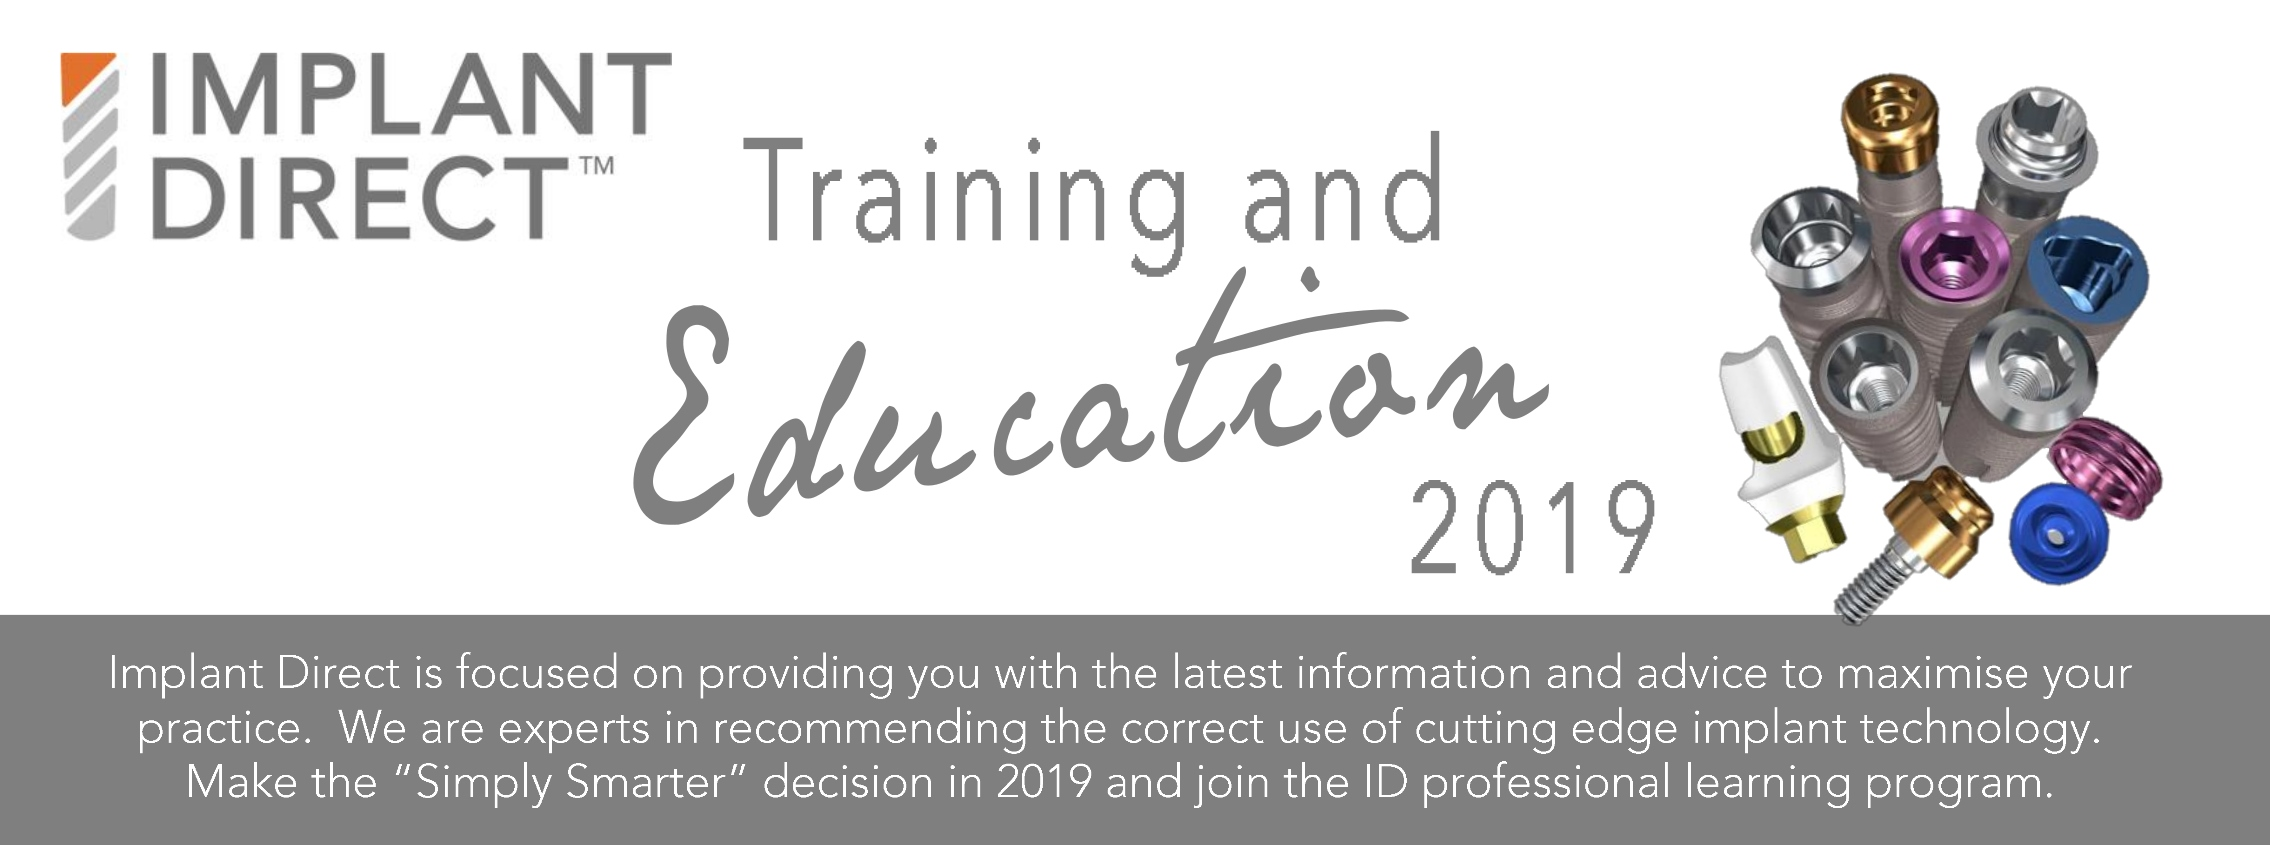 ID edu image 2019 with words